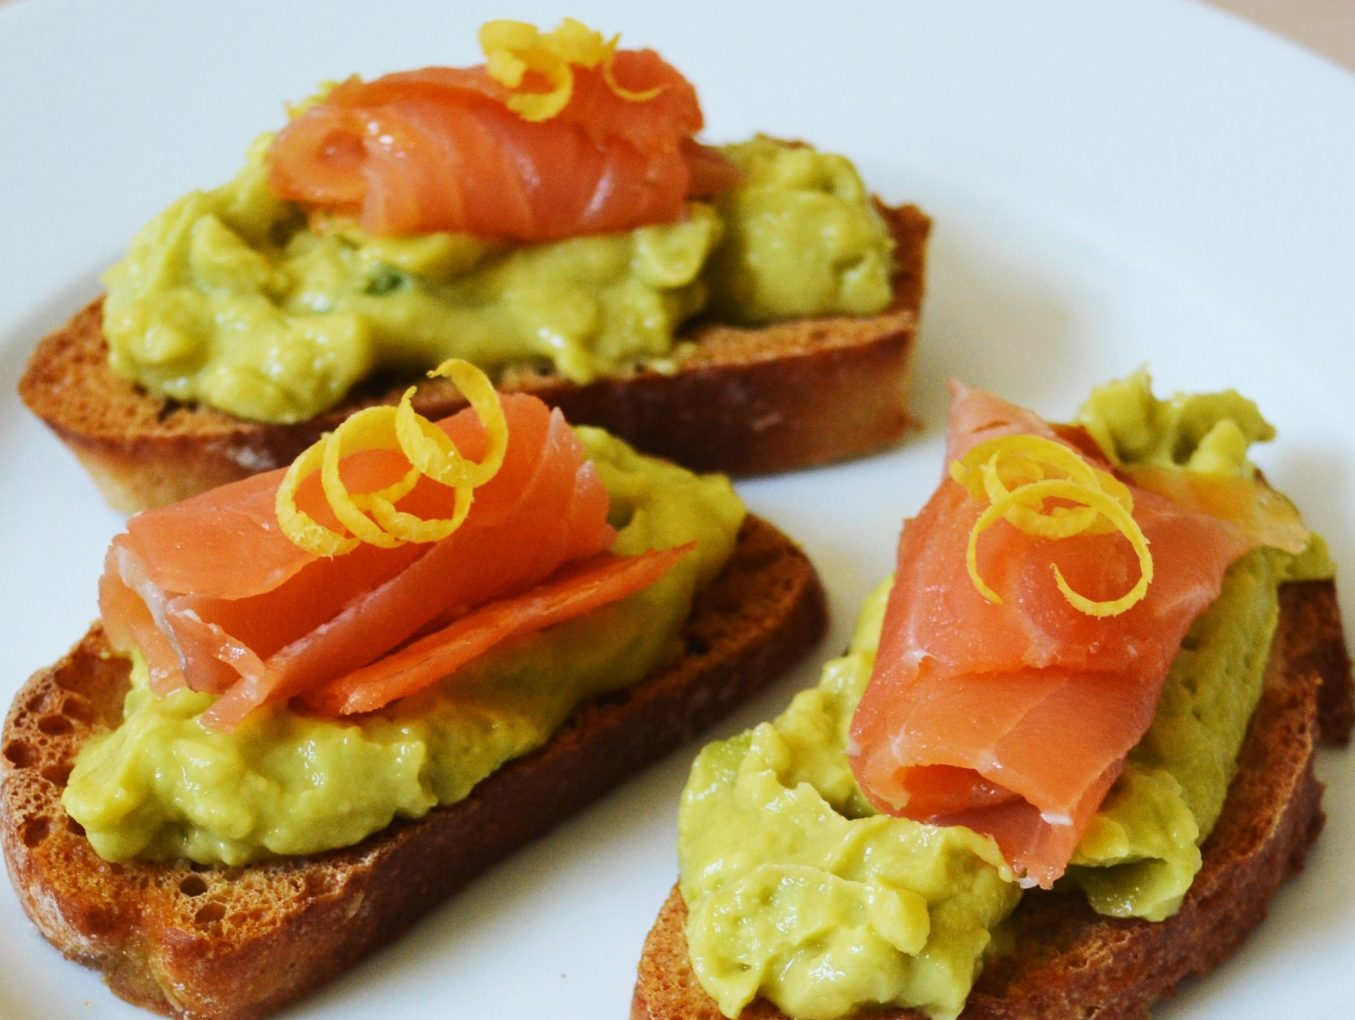 Avocado-Lachs-Bruschetta